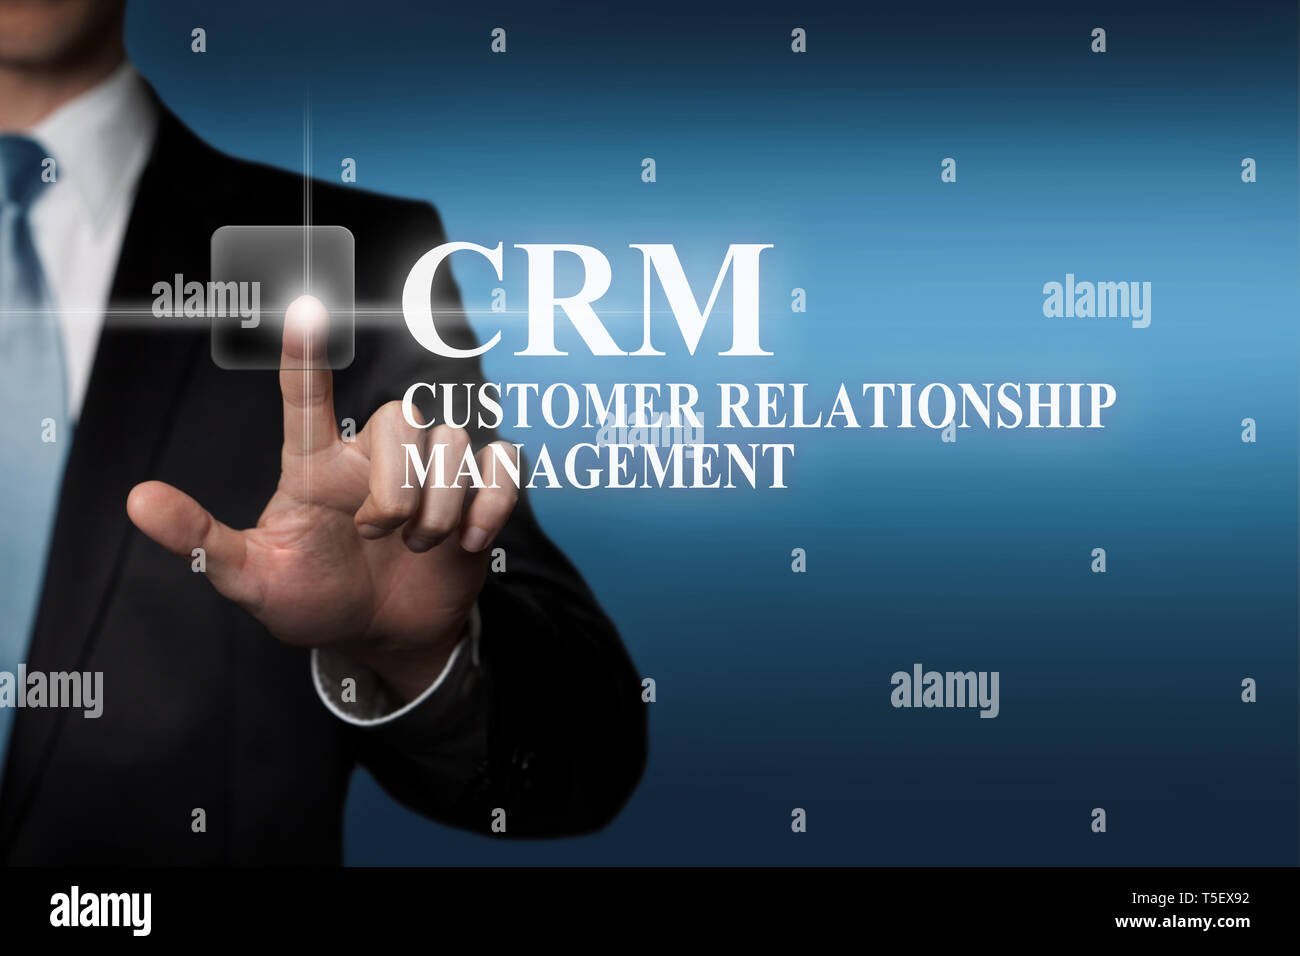 business concept - businessman presses virtual touch screen button - CRM Customer Relationship Management - Stock Image